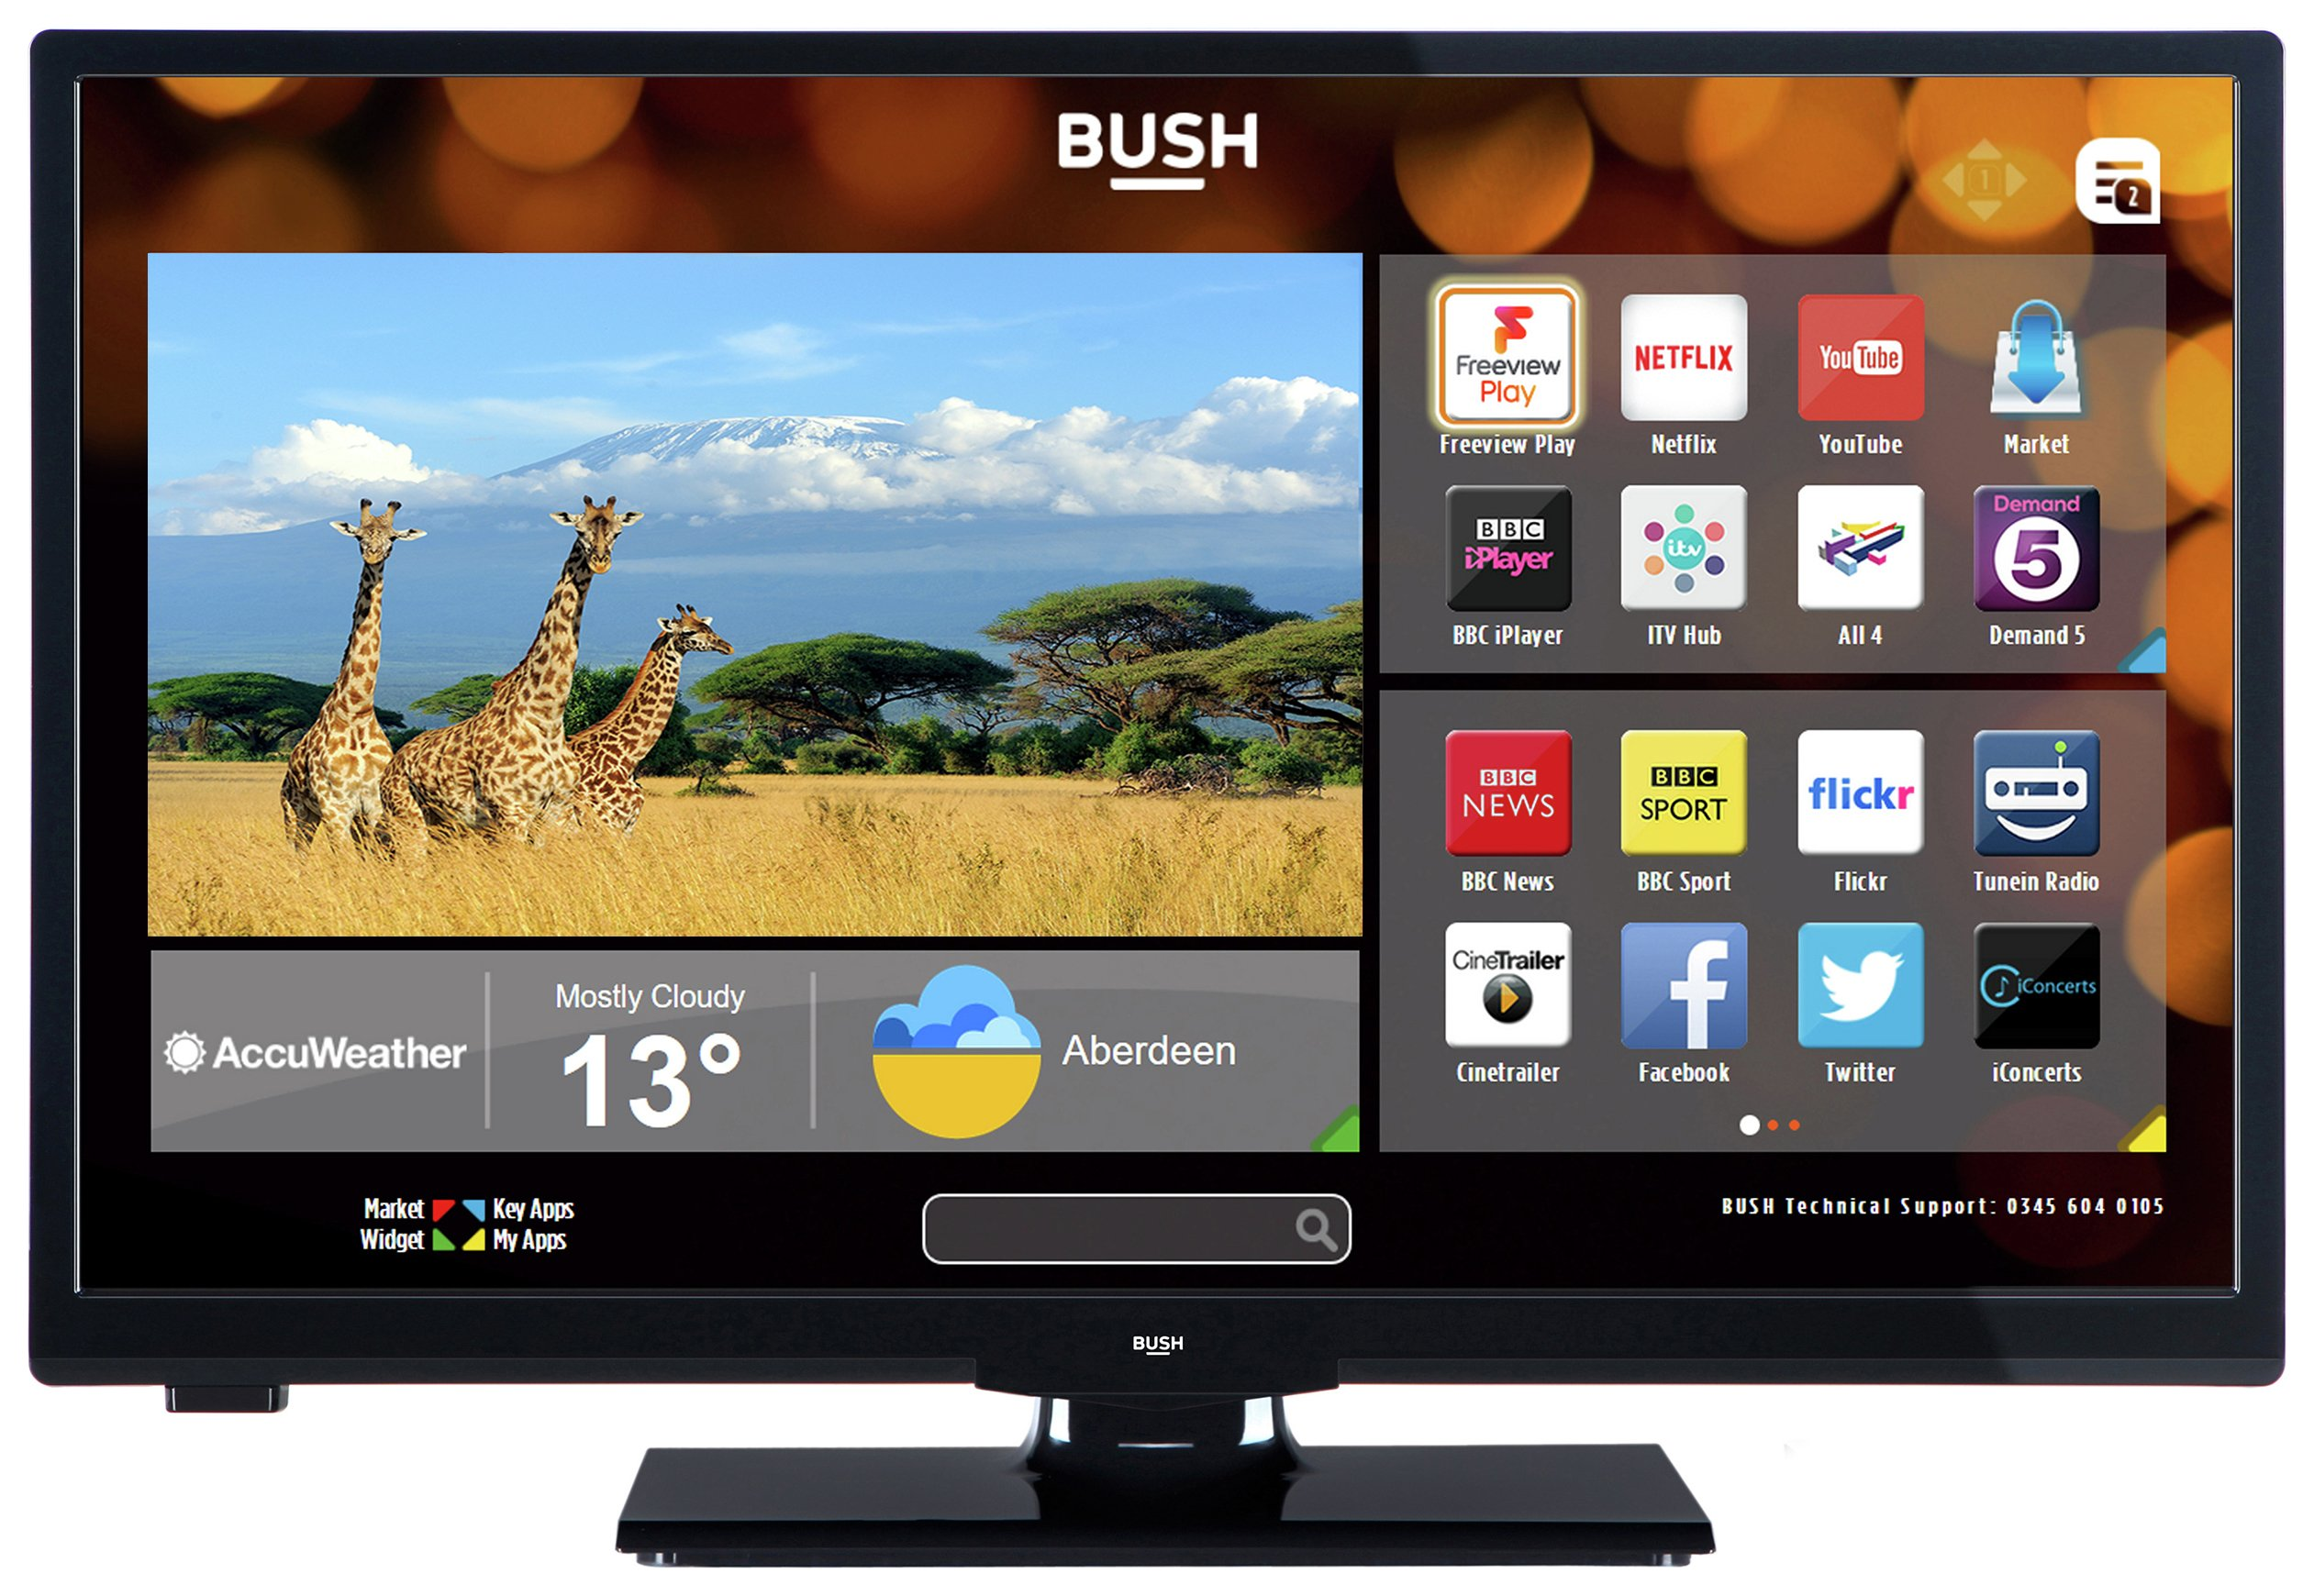 Bush 24 Inch HD Ready Smart TV With DVD Player - Black